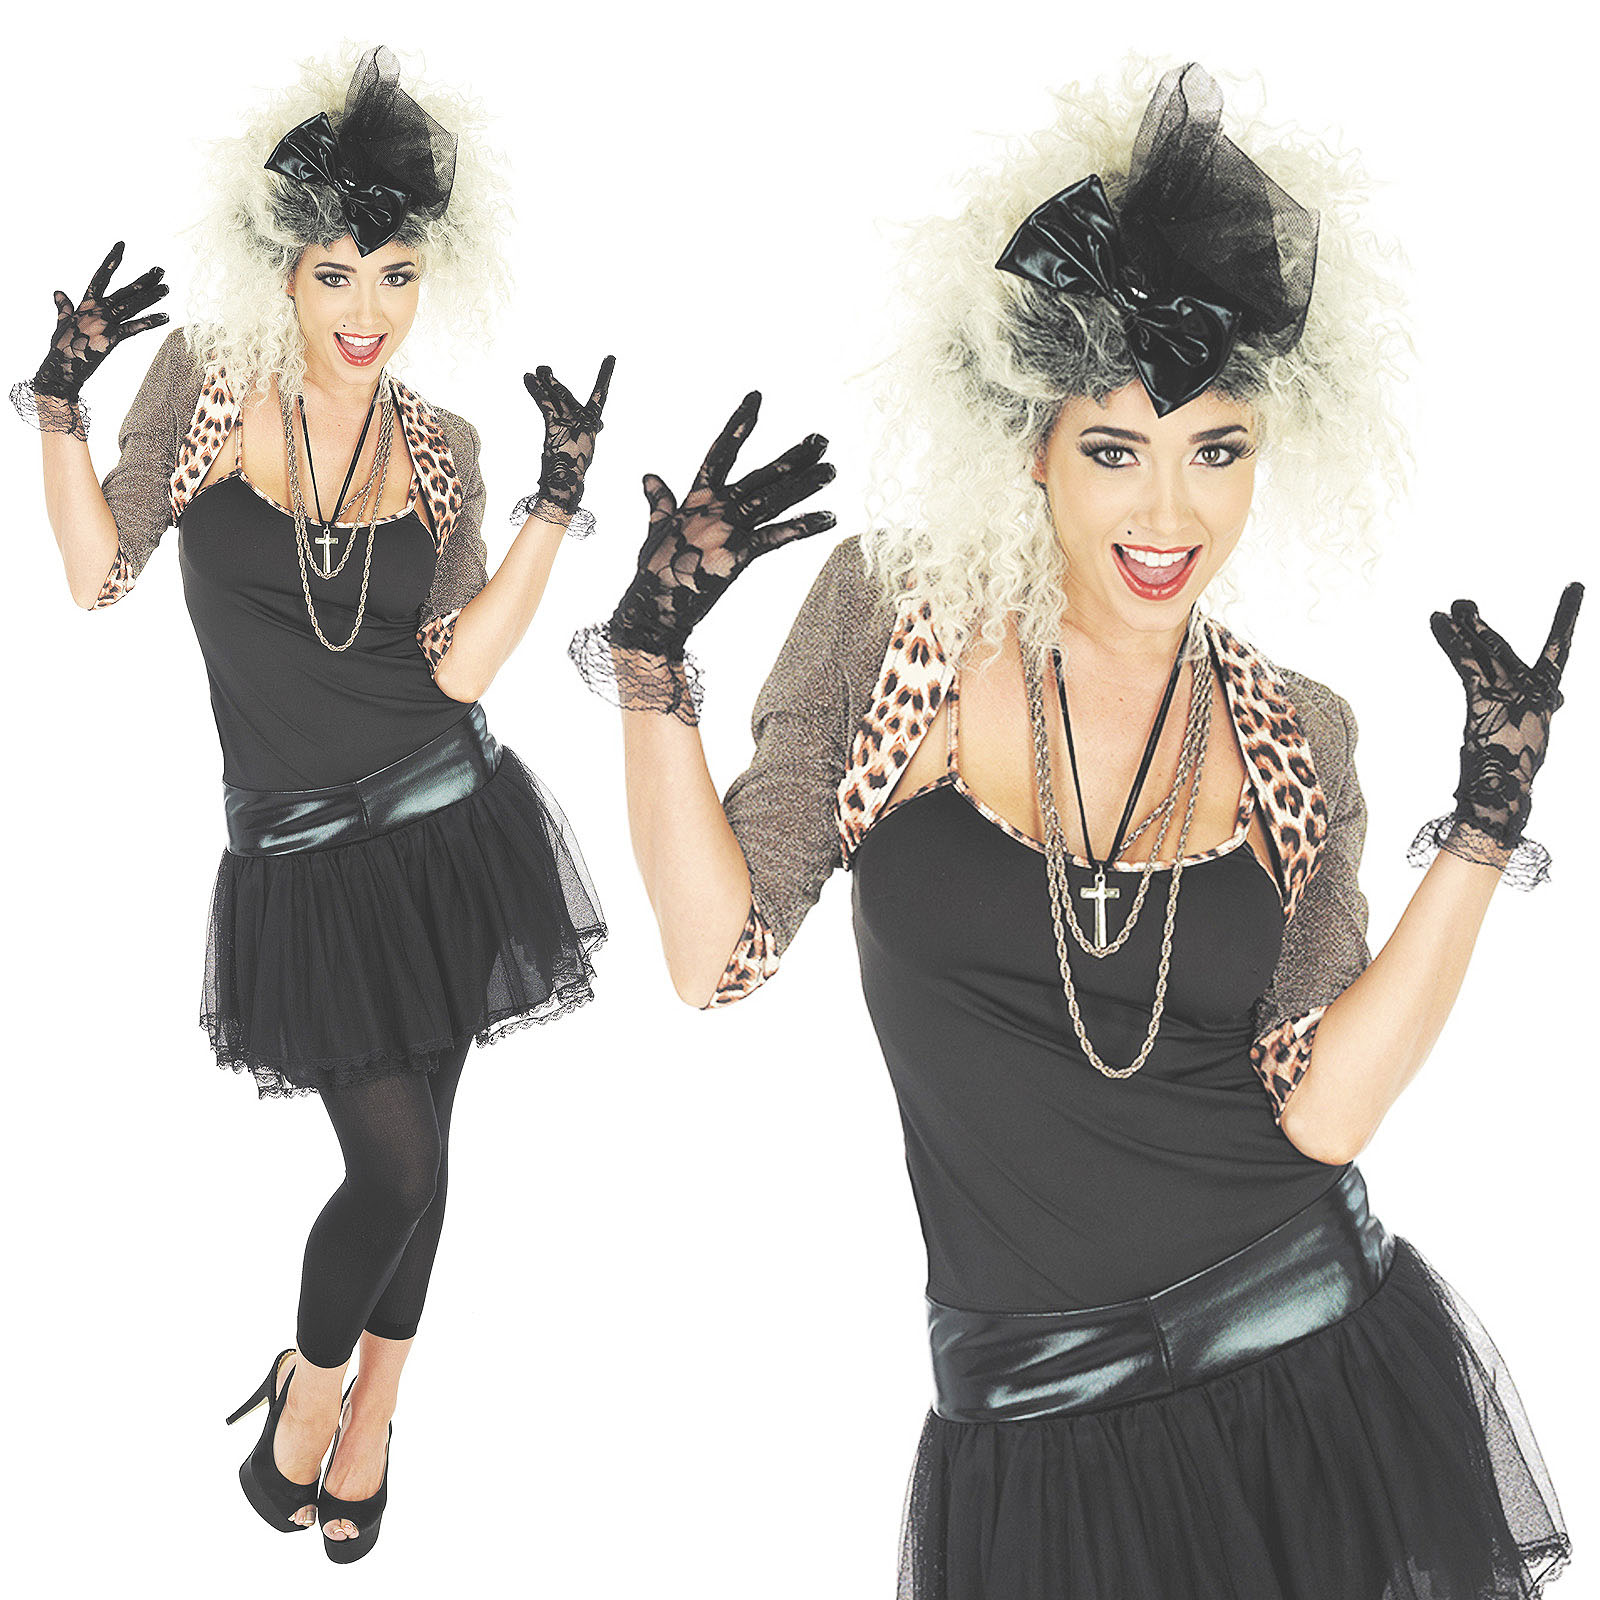 e26b836aaa Sentinel Ladies Wild Child Madonna Fancy Dress Costume 80S Retro Pop Star  Outfit UK 8-30 Sc 1 St EBay